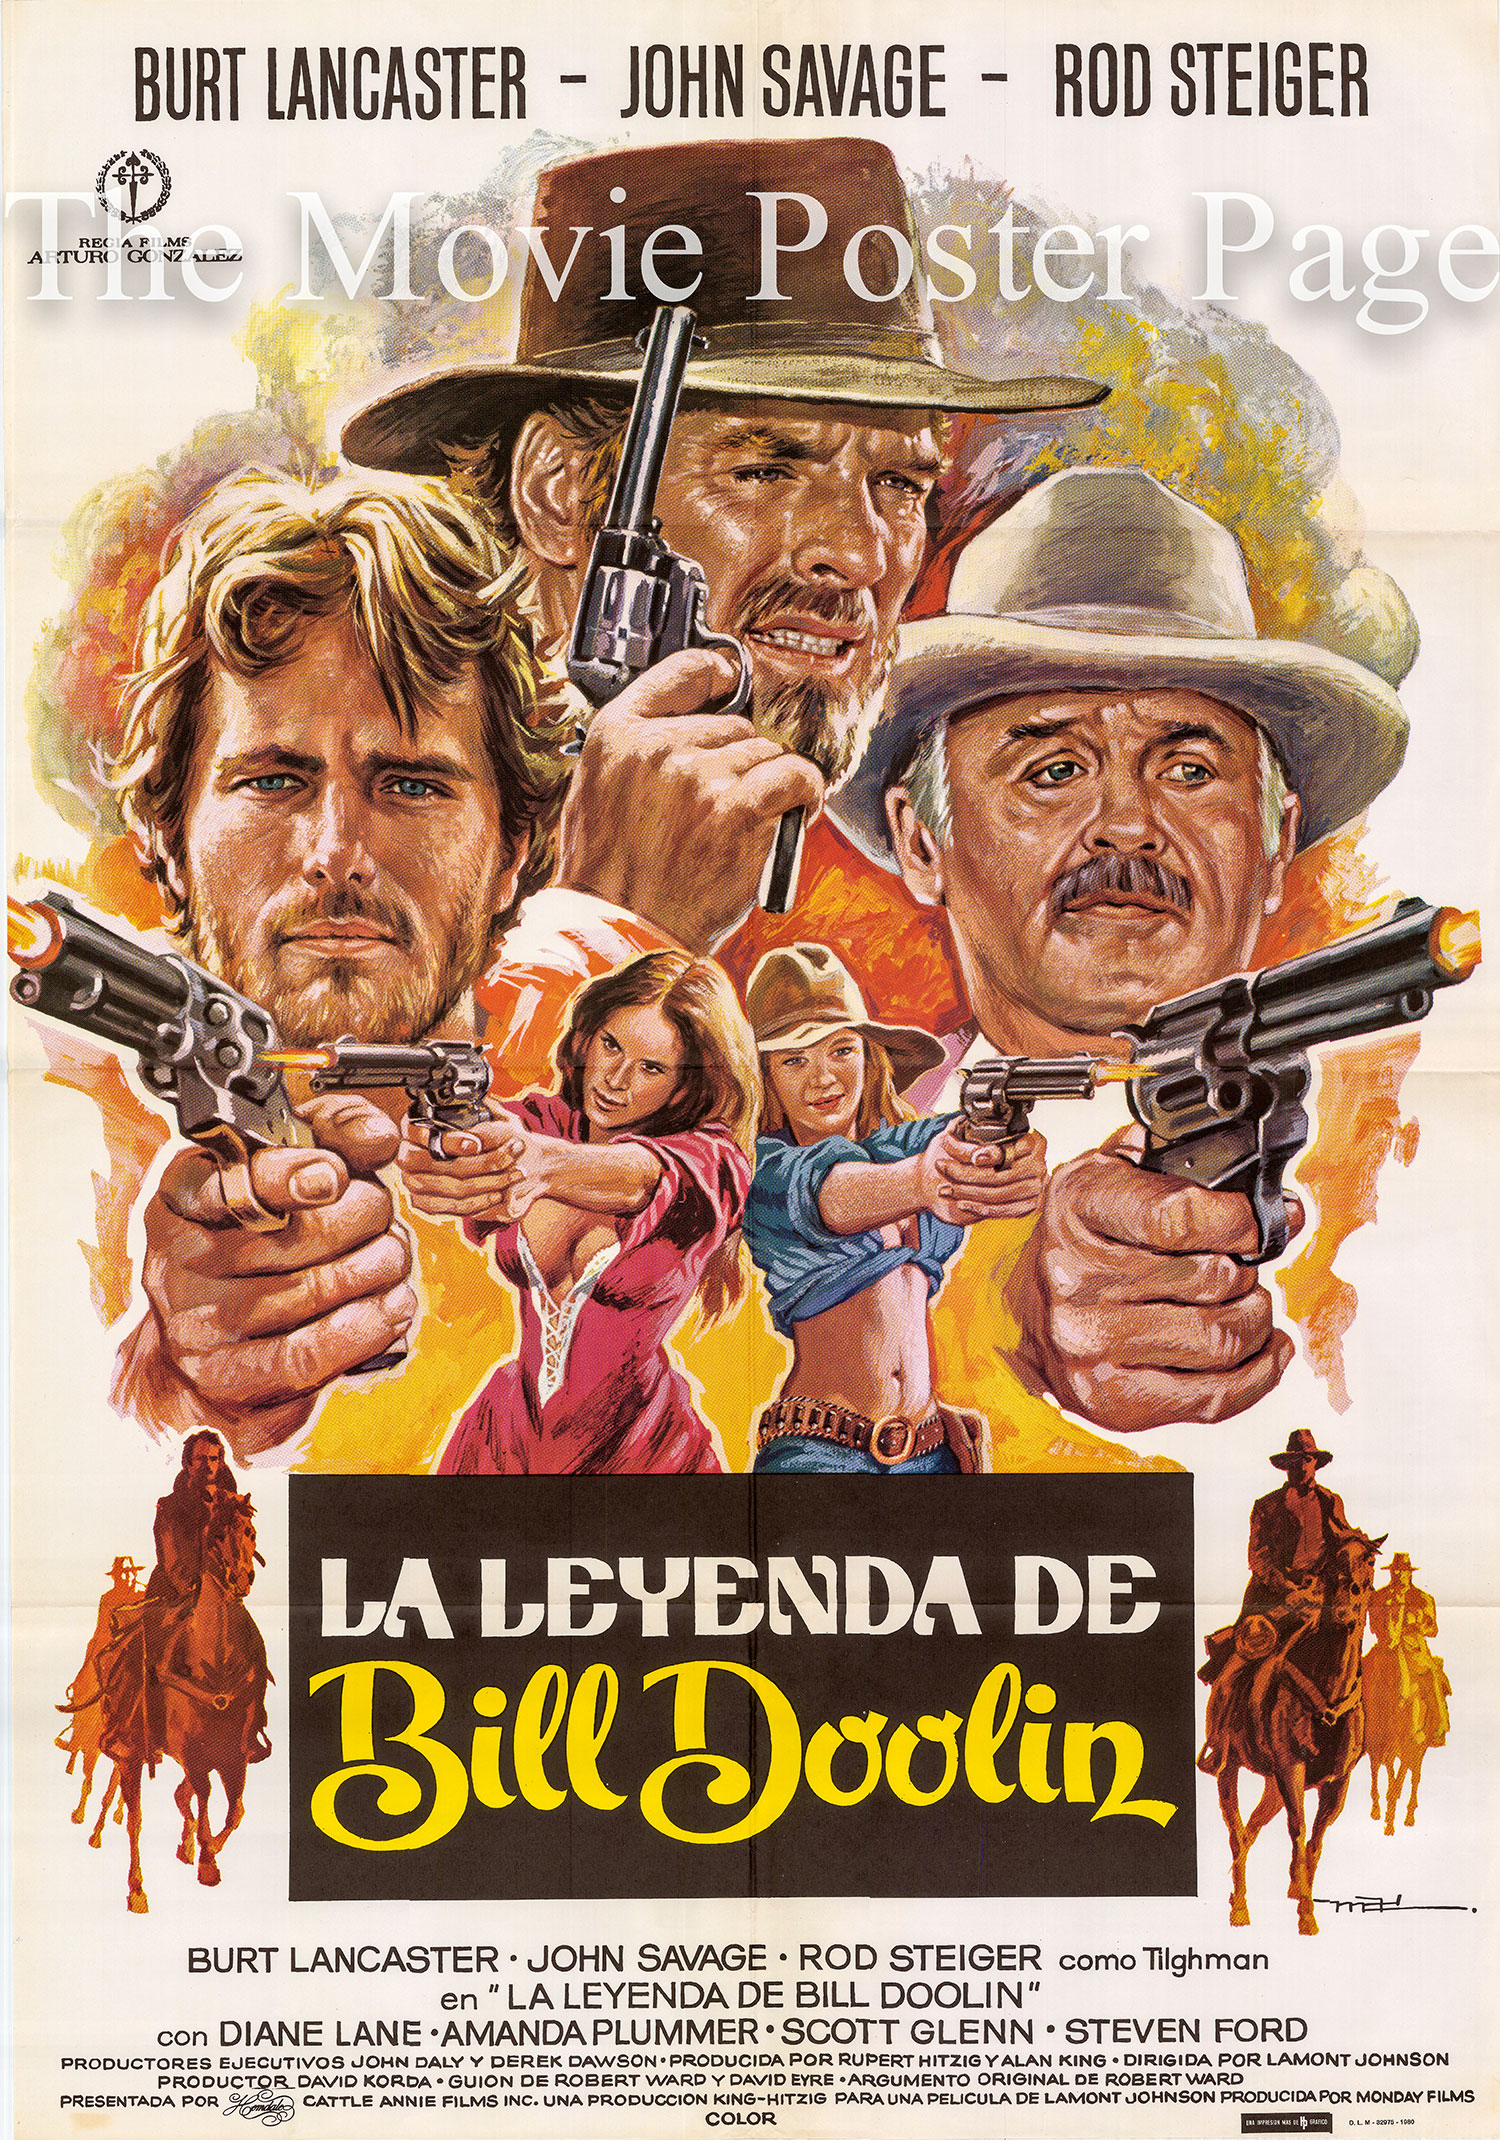 Pictured is a Spanish promotional one-sheet poster for the 1980 Lamont Johnson film Cattle Annie and Little Britches starring Burt Lancaster.